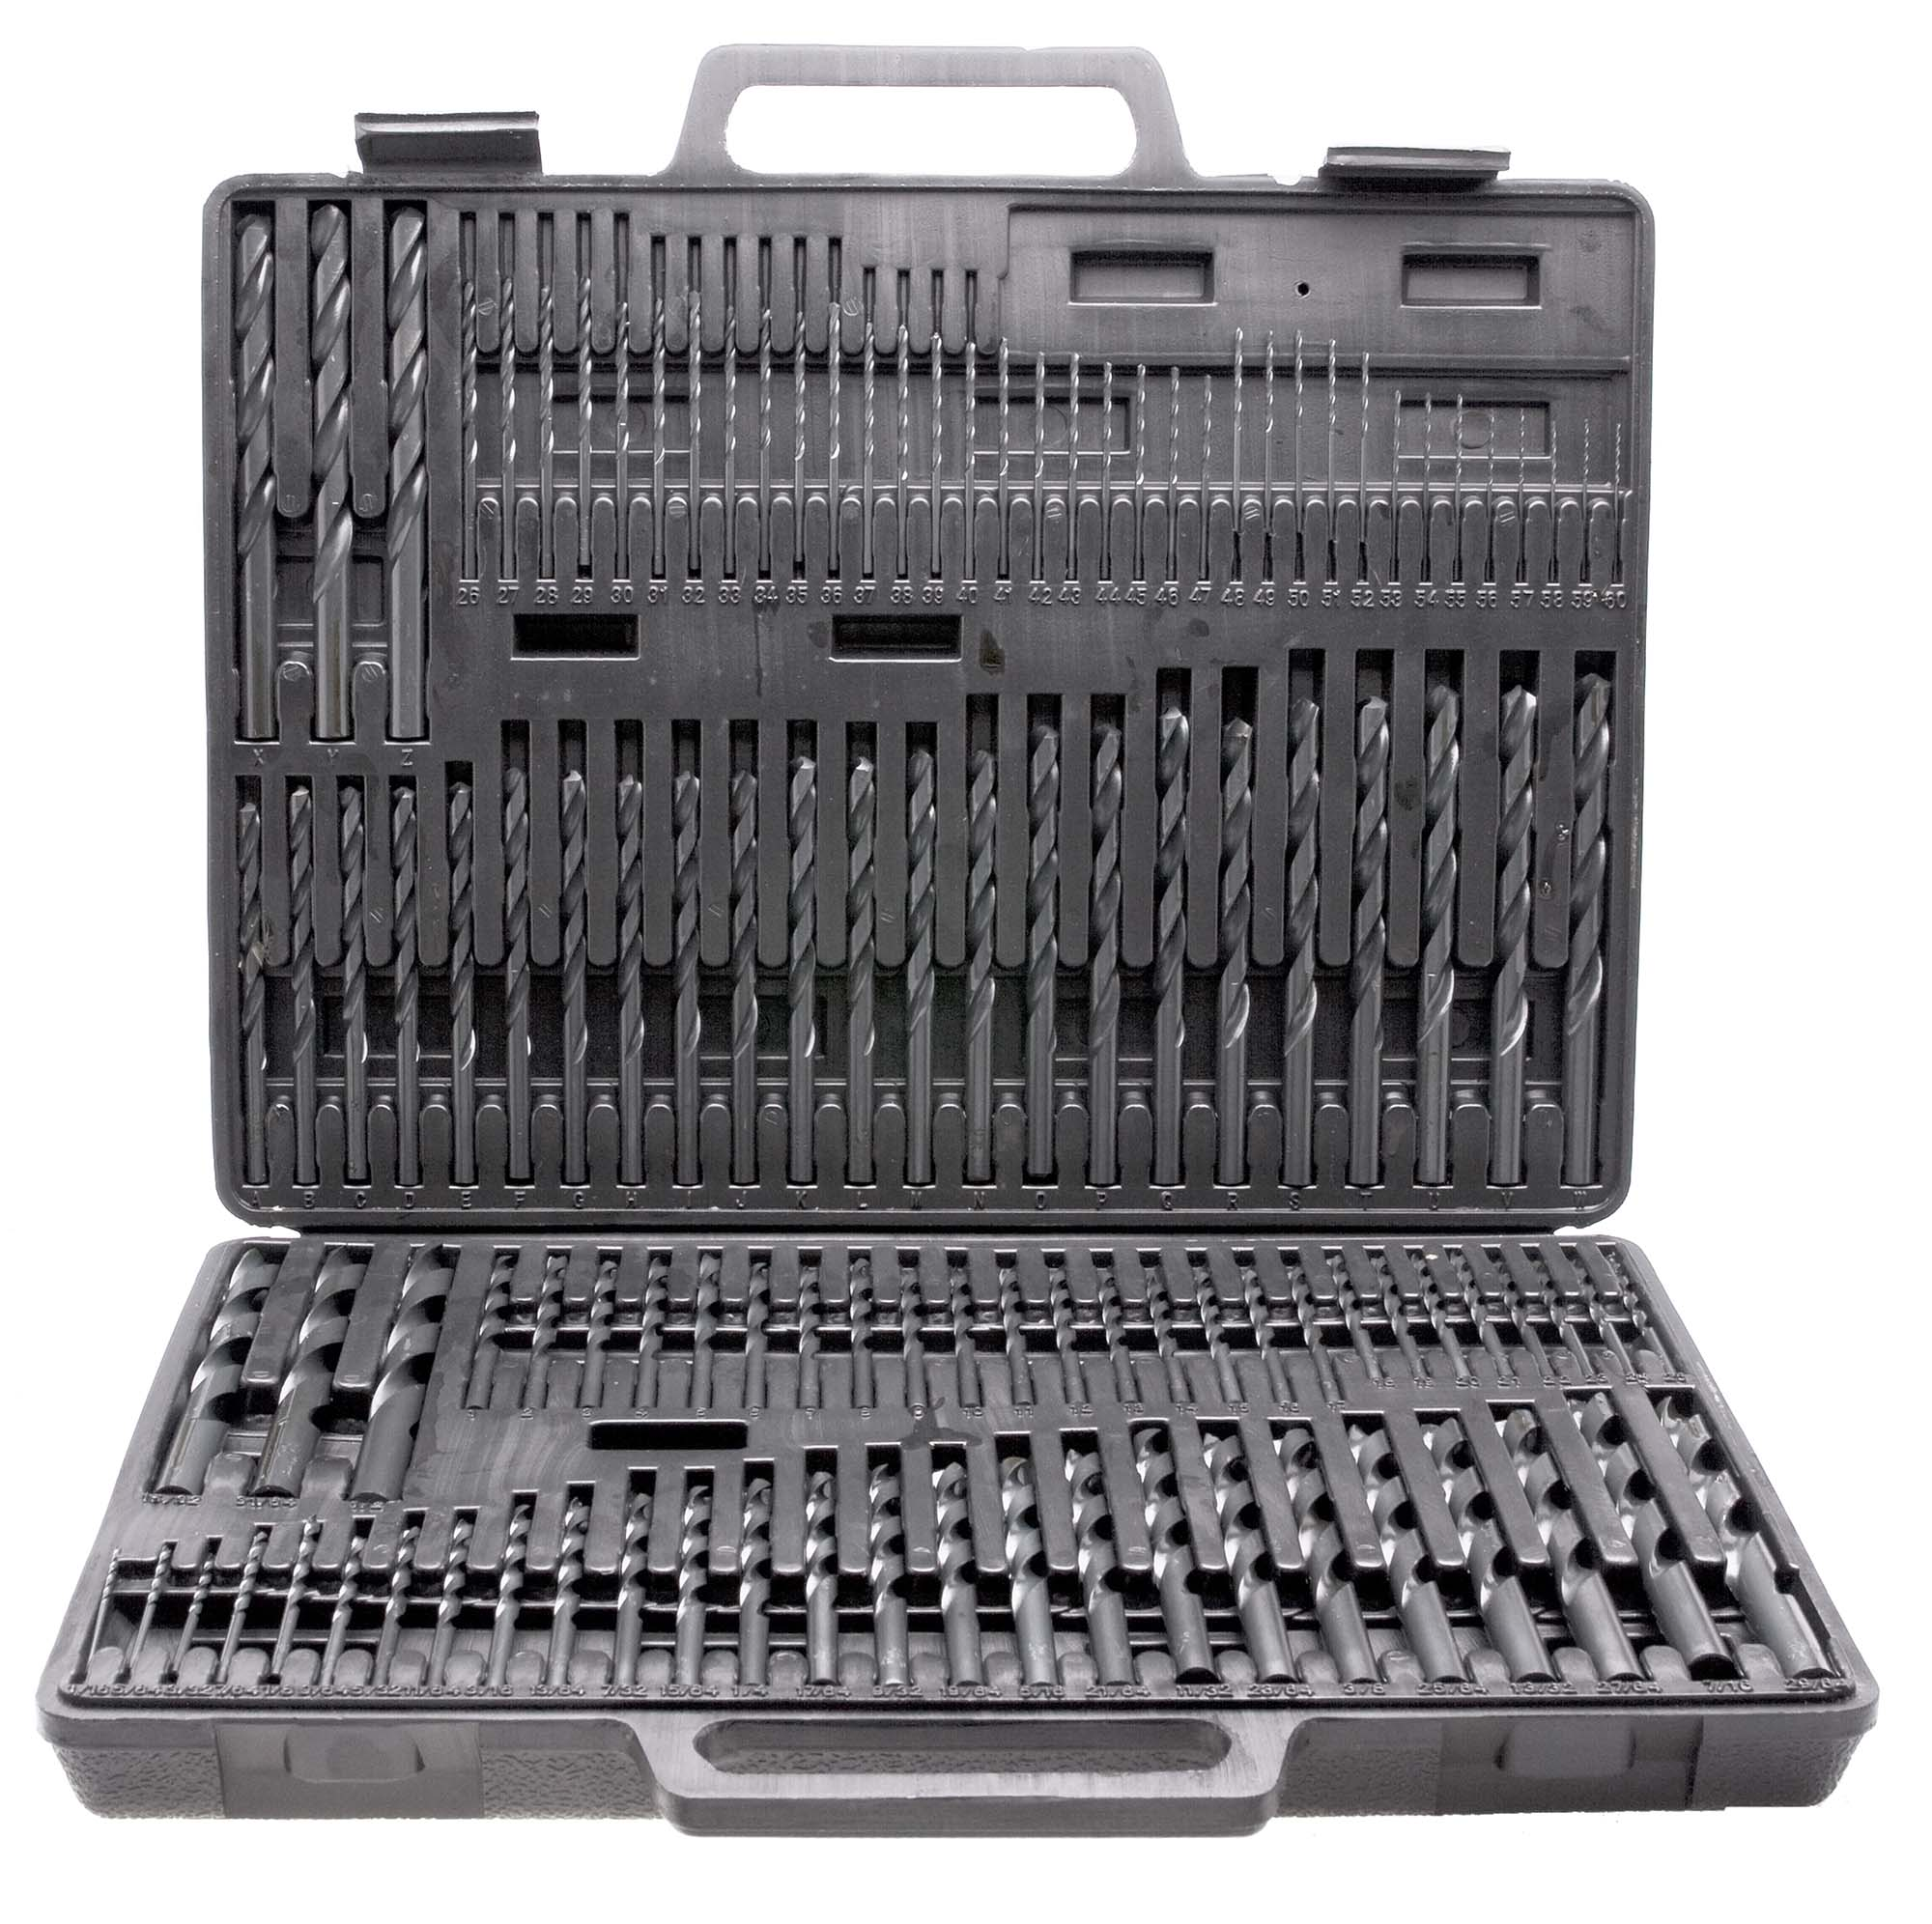 "1/16-1/2"" by 64th, A-Z, 1-60 Maintenance Quality 3 in 1 Combo Jobber Length Drill Set, High Speed Steel , 115 bits"